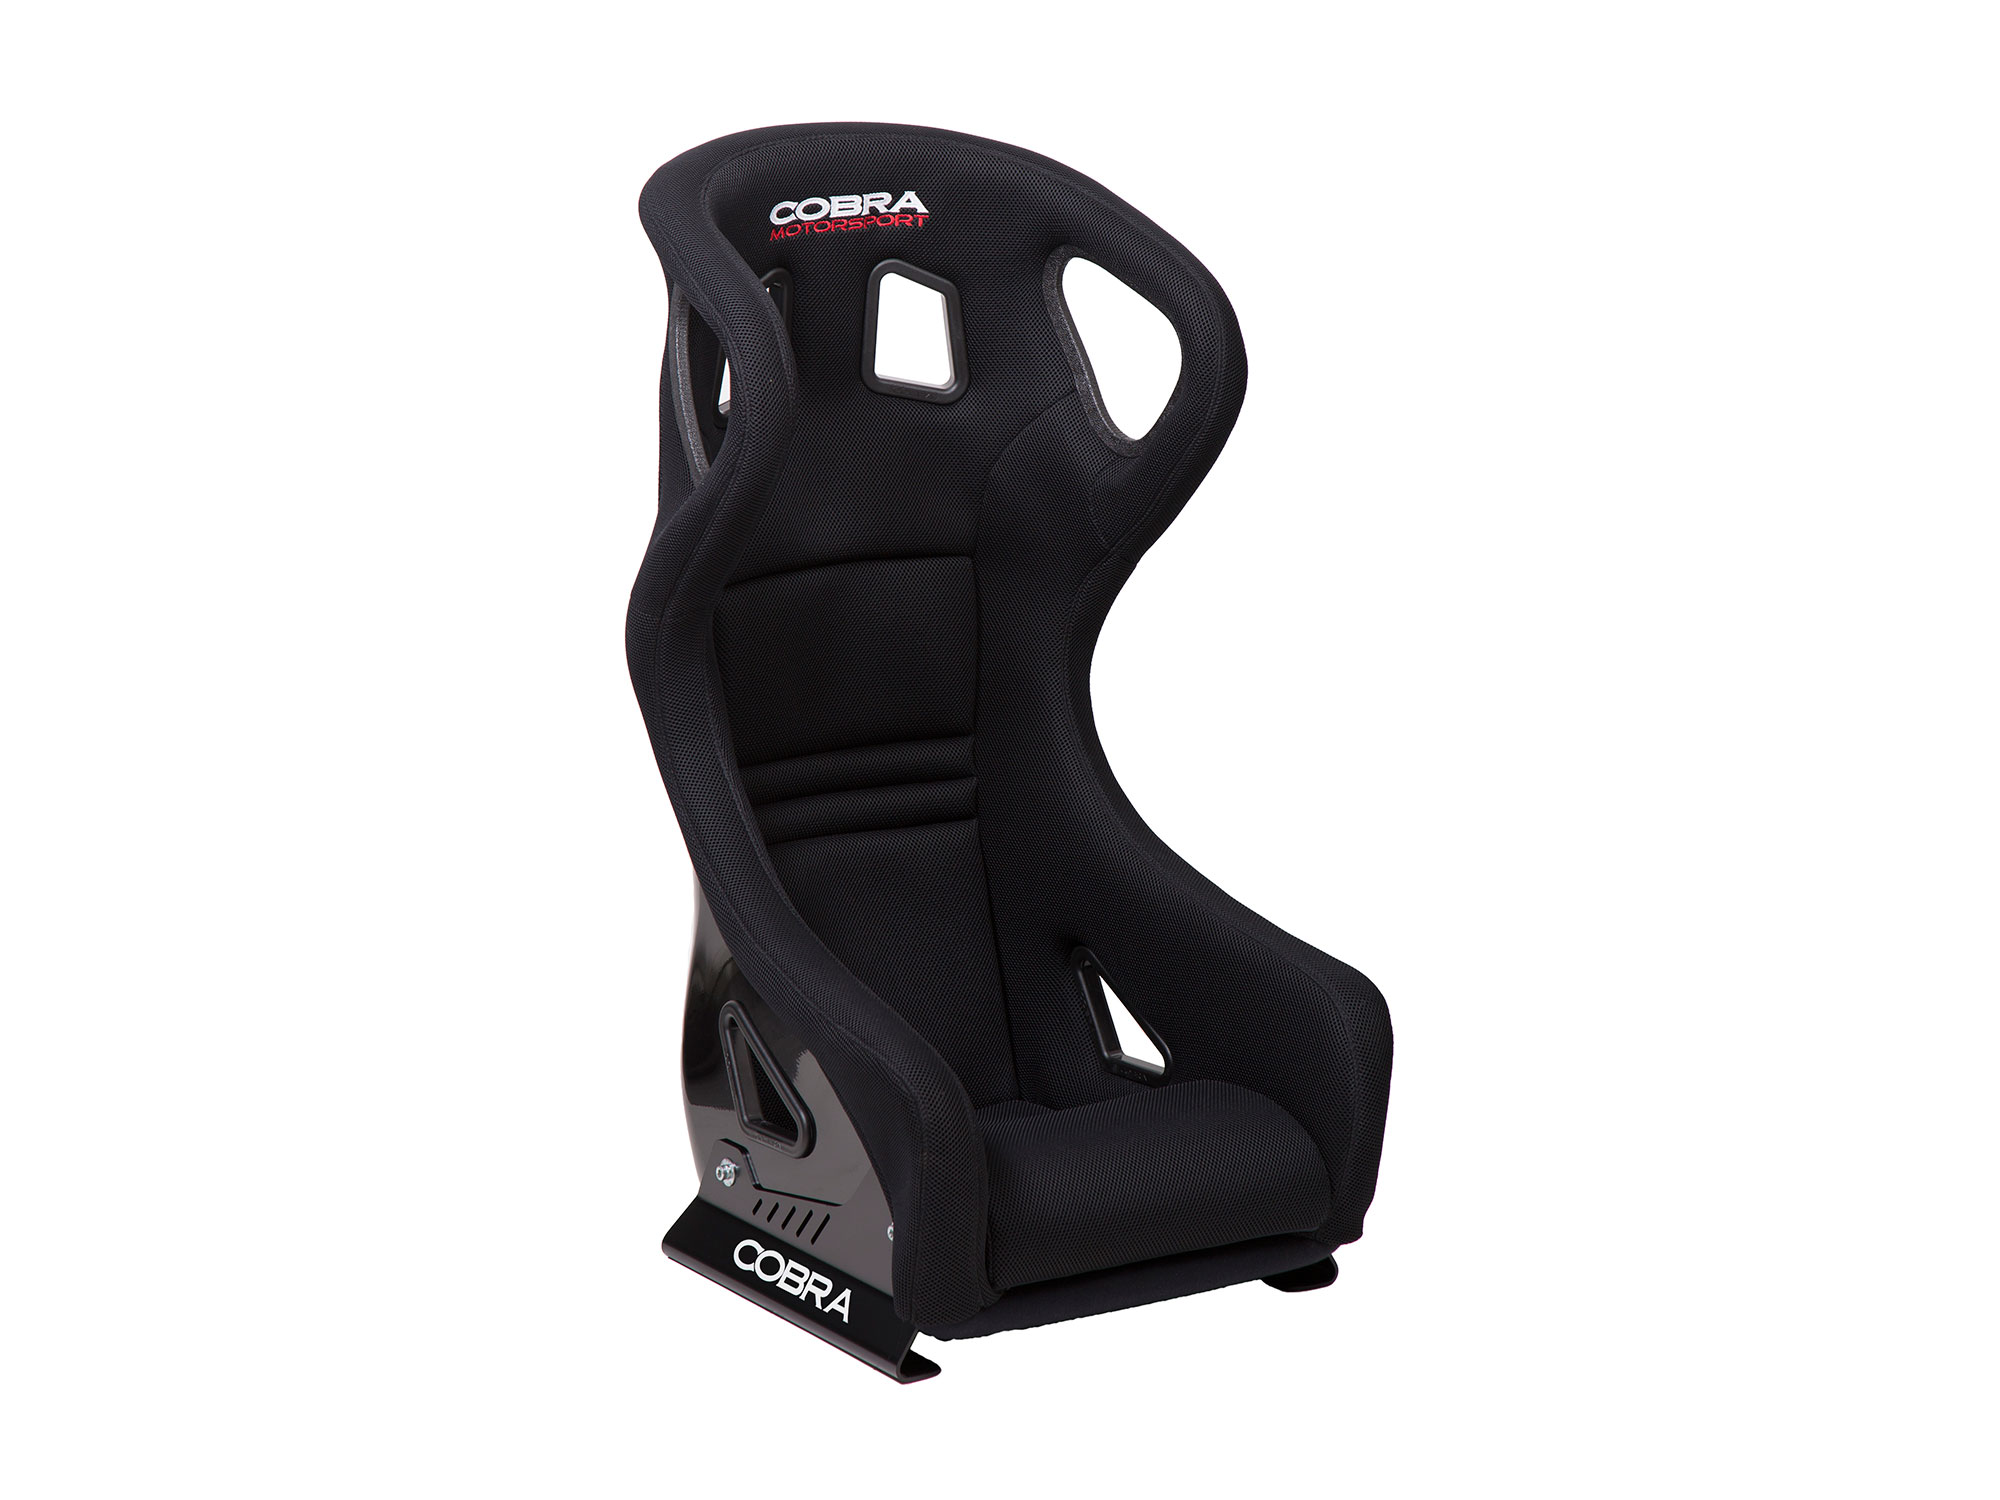 Cobra - Evolution Pro-Fit Racing Seat THUMBNAIL